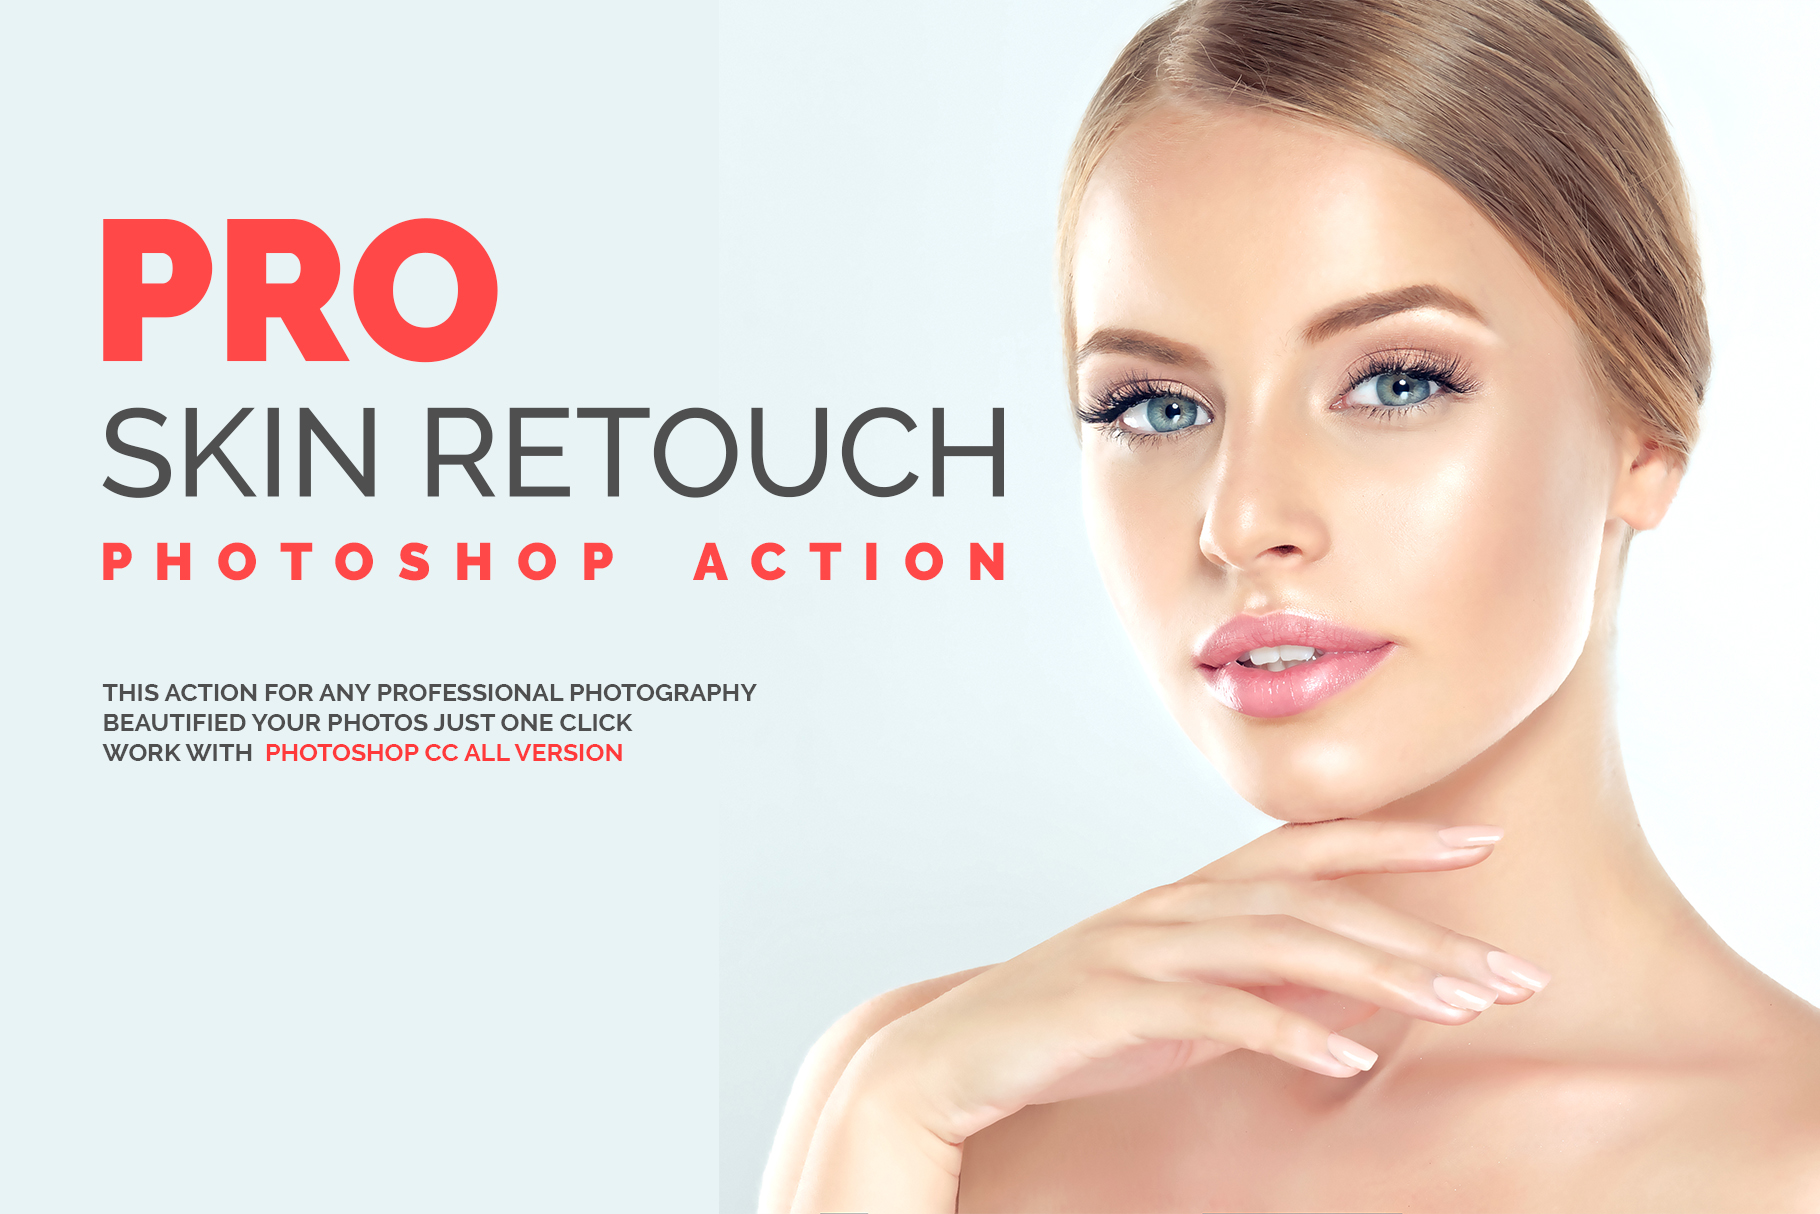 Skin Retouch Photoshop Action